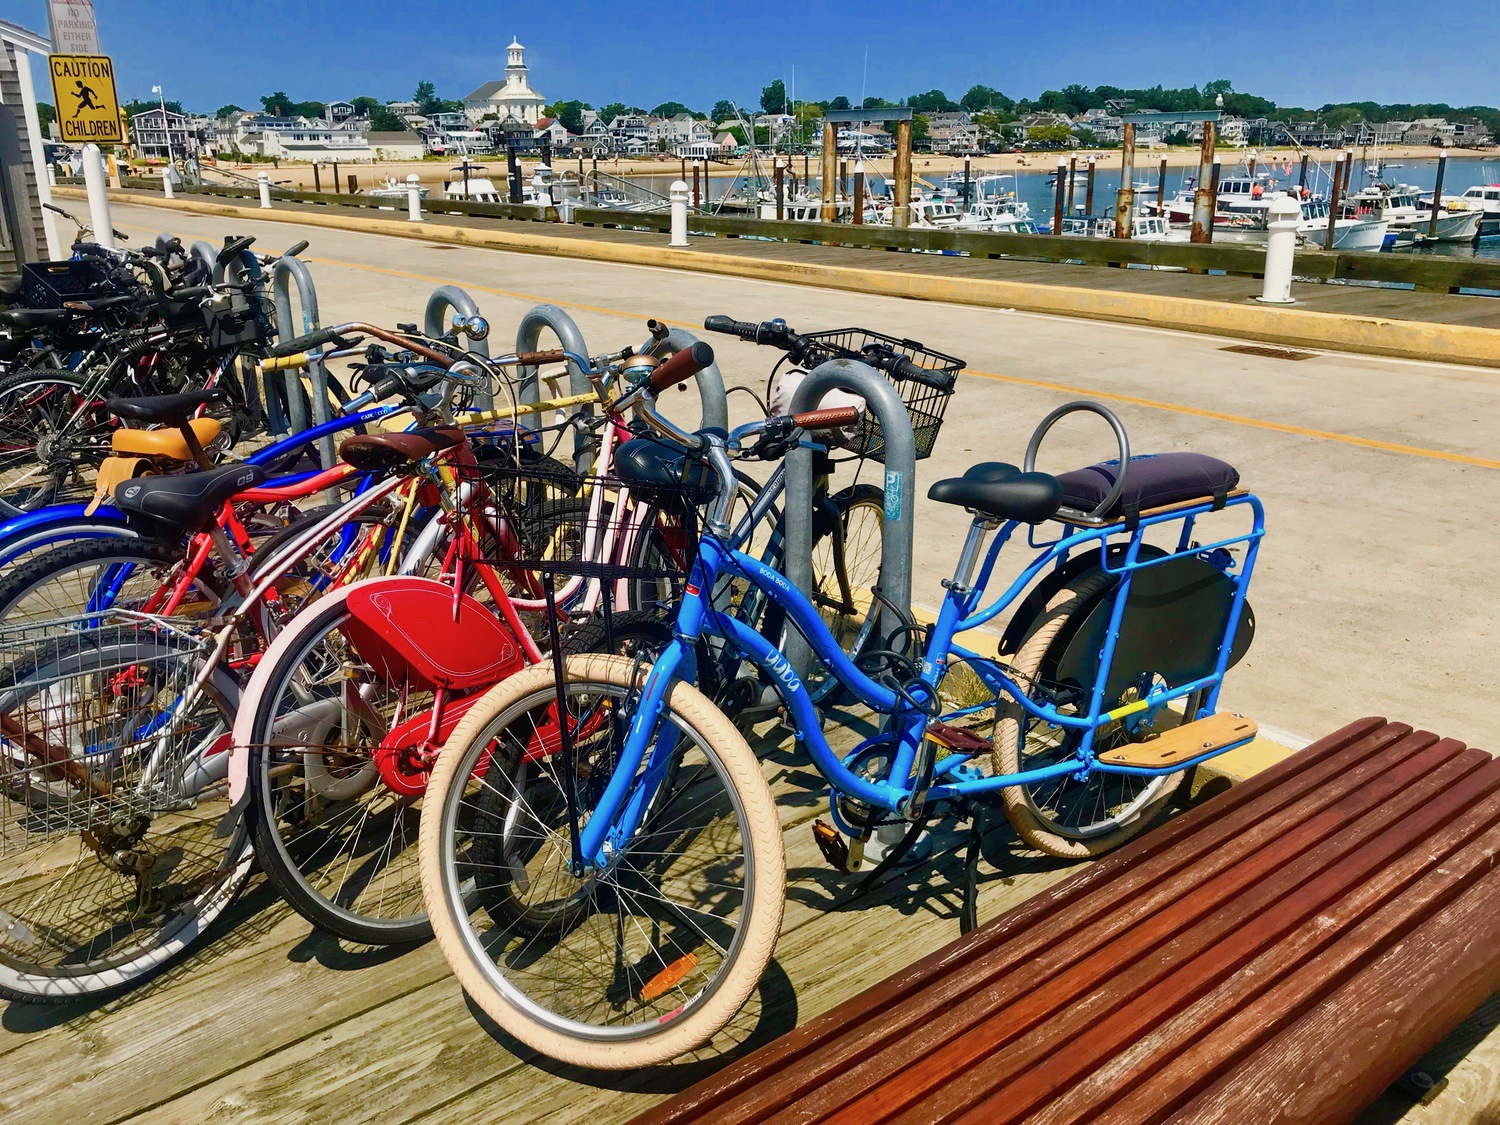 Enjoy a private bike tour with your friends or family curated to your schedule, interests, and skill levels.